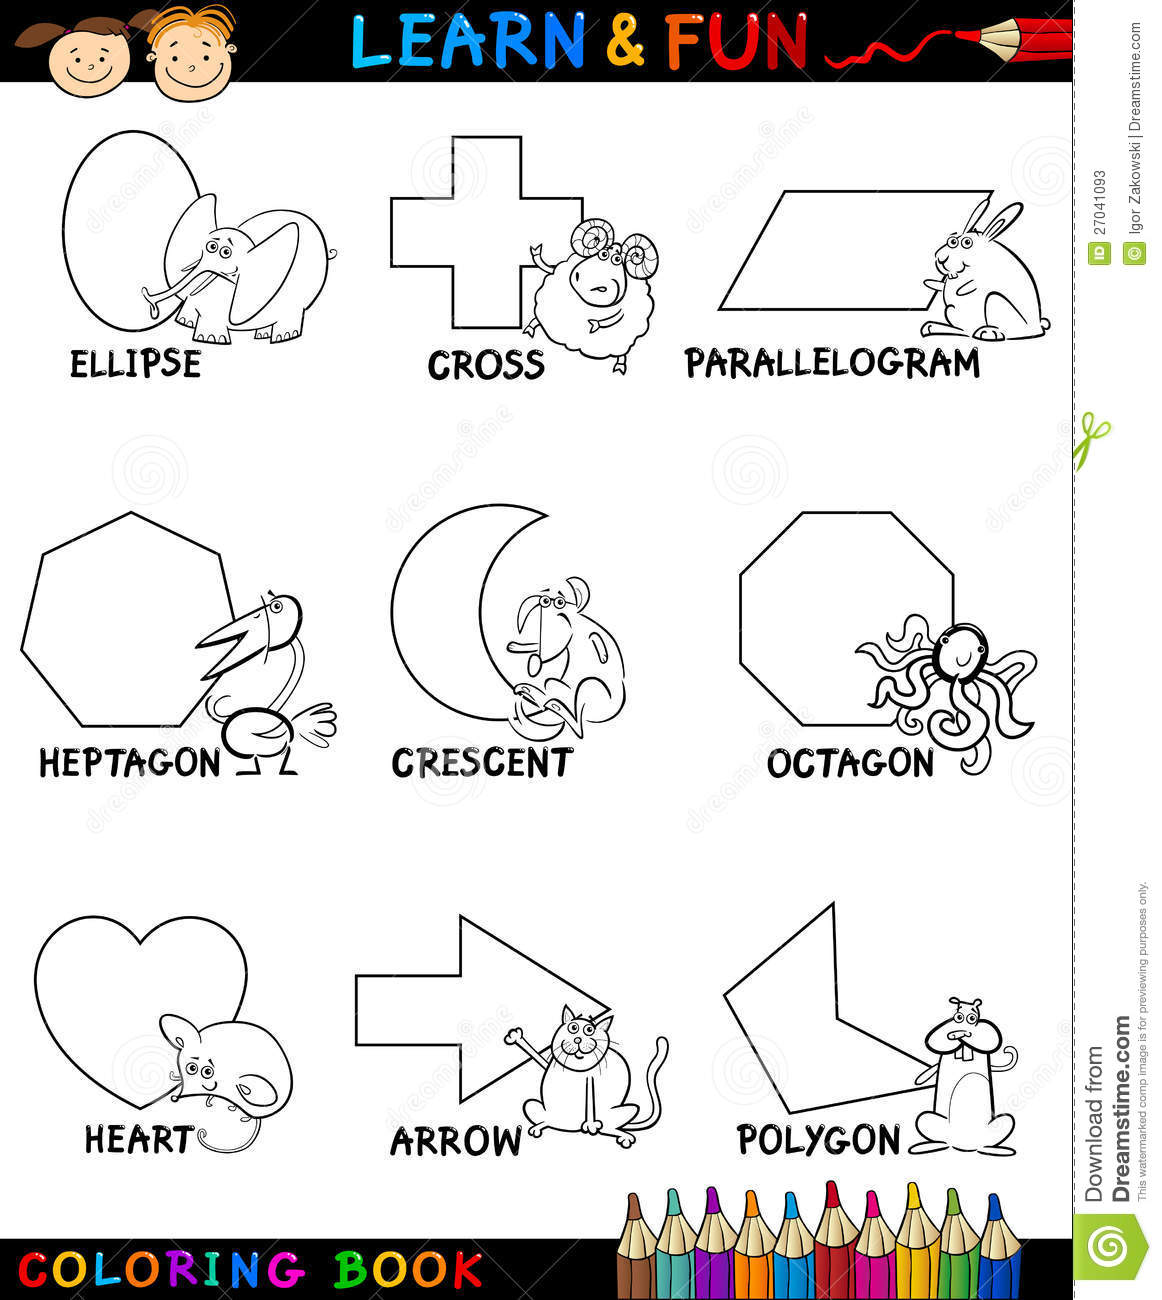 Coloring in shapes - Basic Shapes With Animals For Coloring